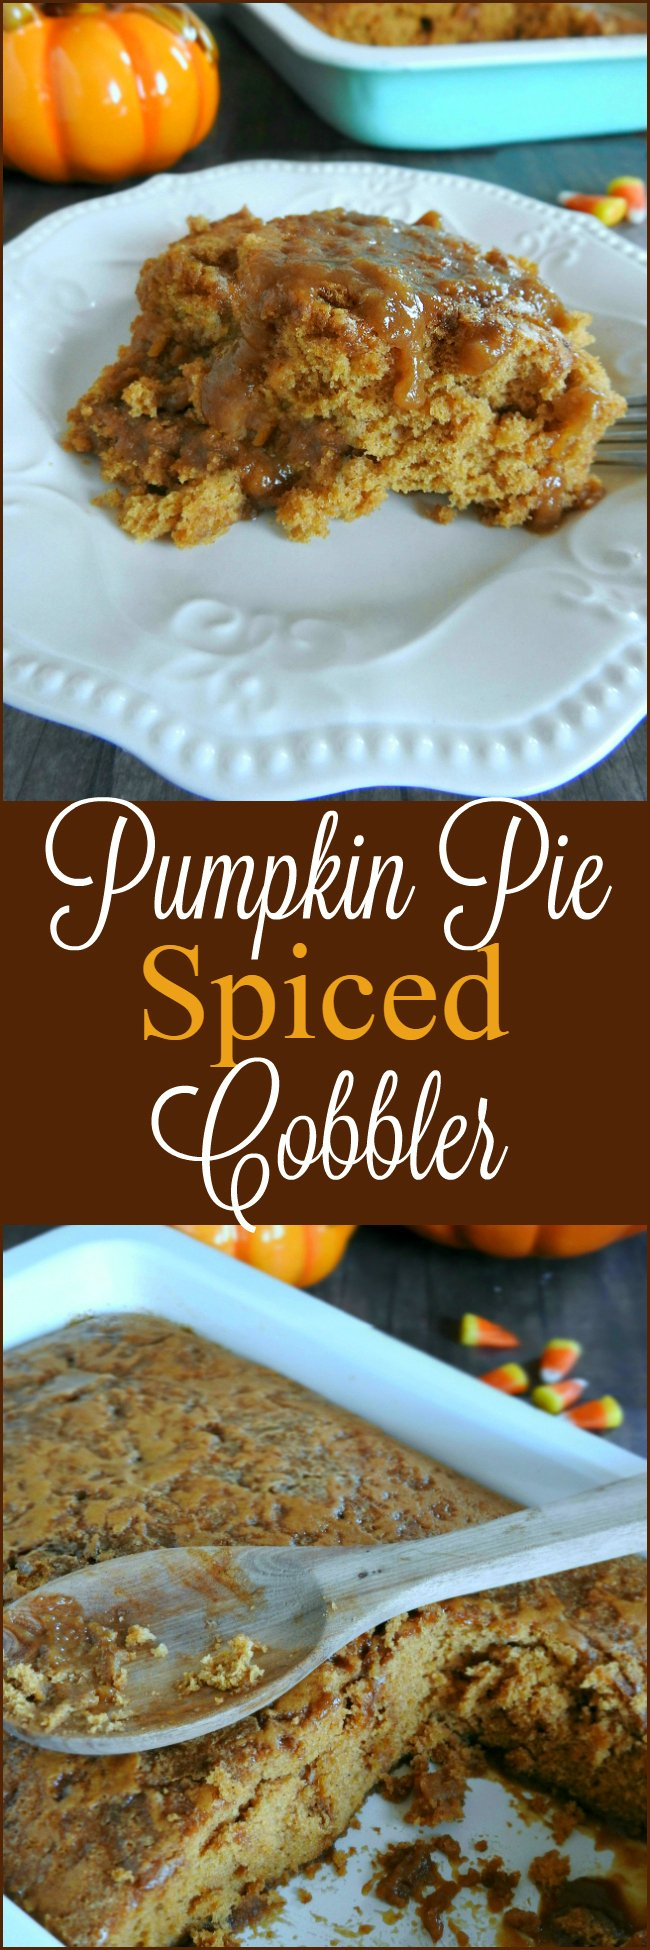 pumpkin-pie-spiced-cobbler-perfect-for-thanksgiving-sewlicioushomedecor-com